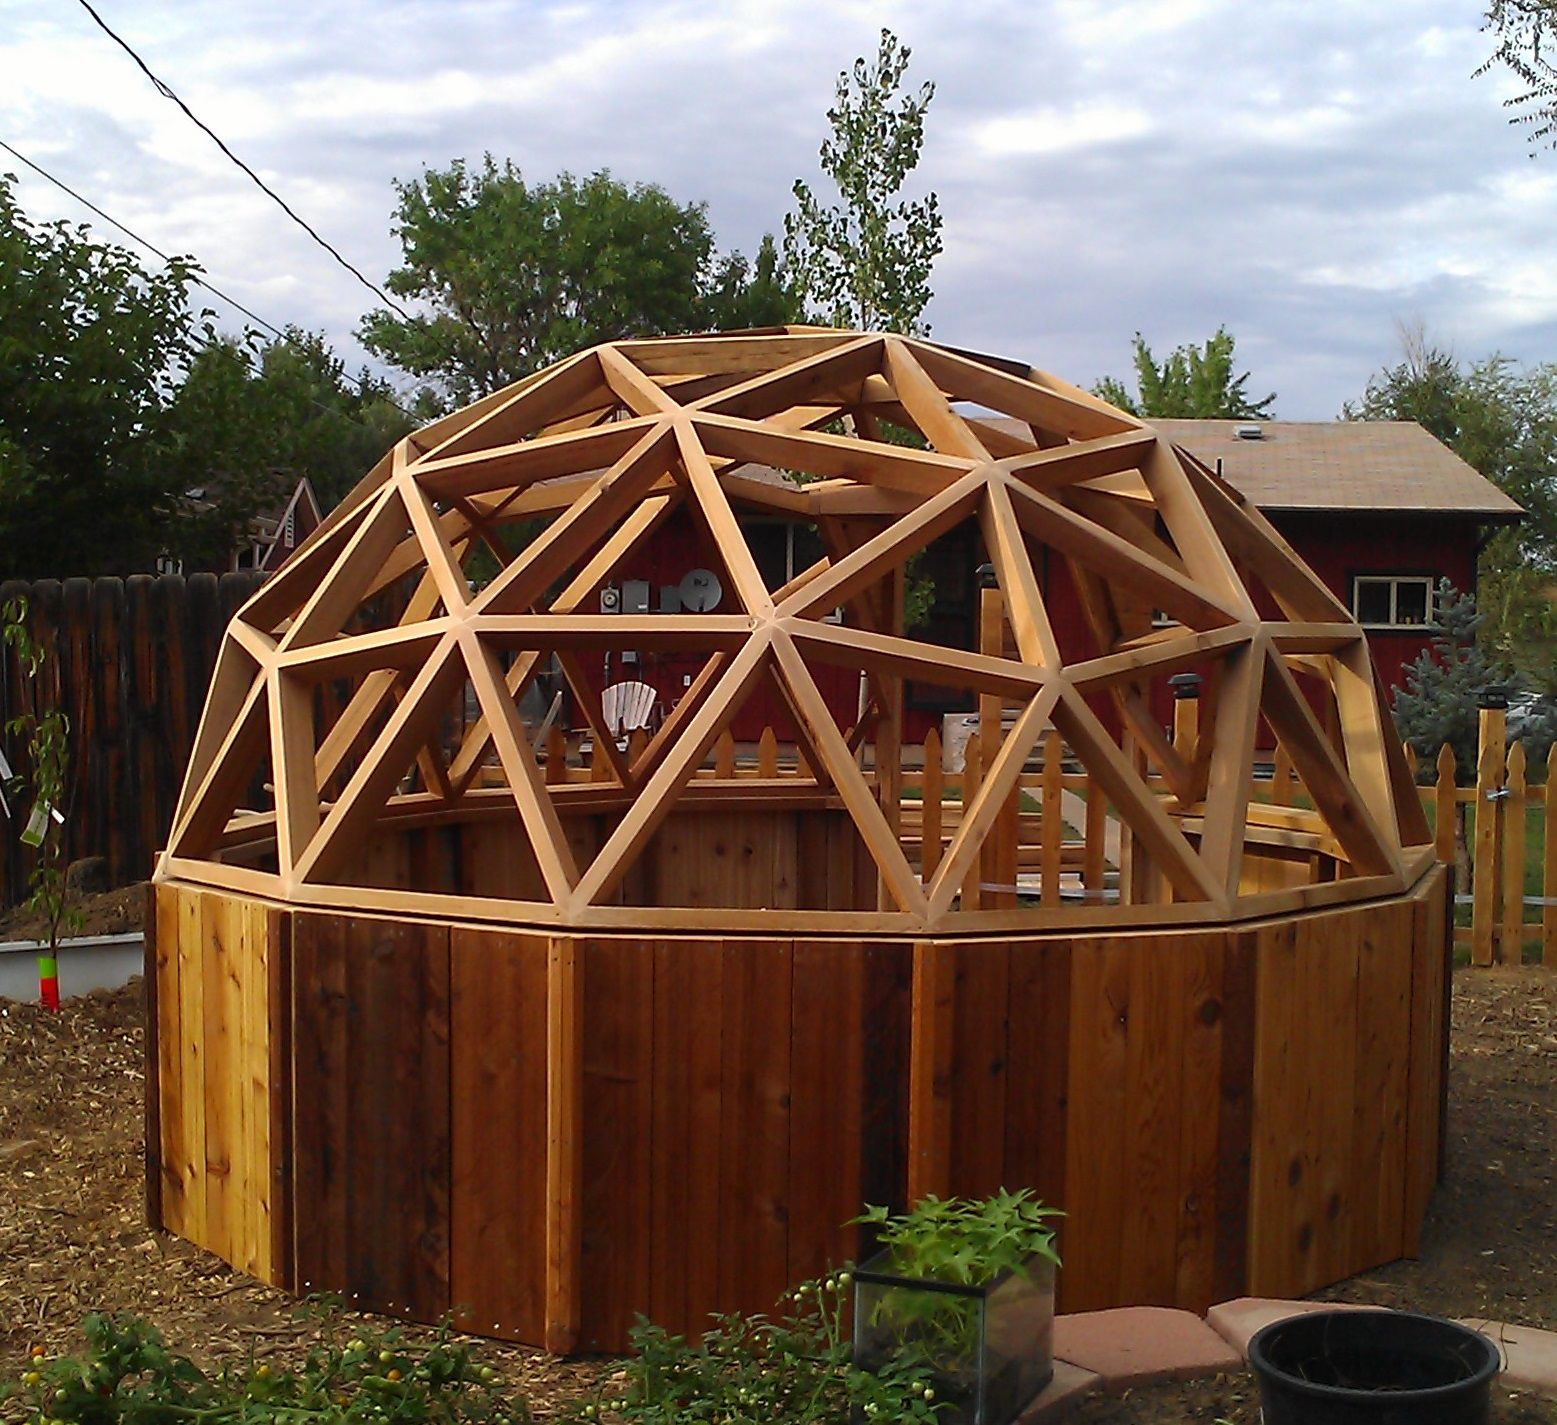 Dome Home Kits: Geodesic Dome Wood - Pesquisa Google